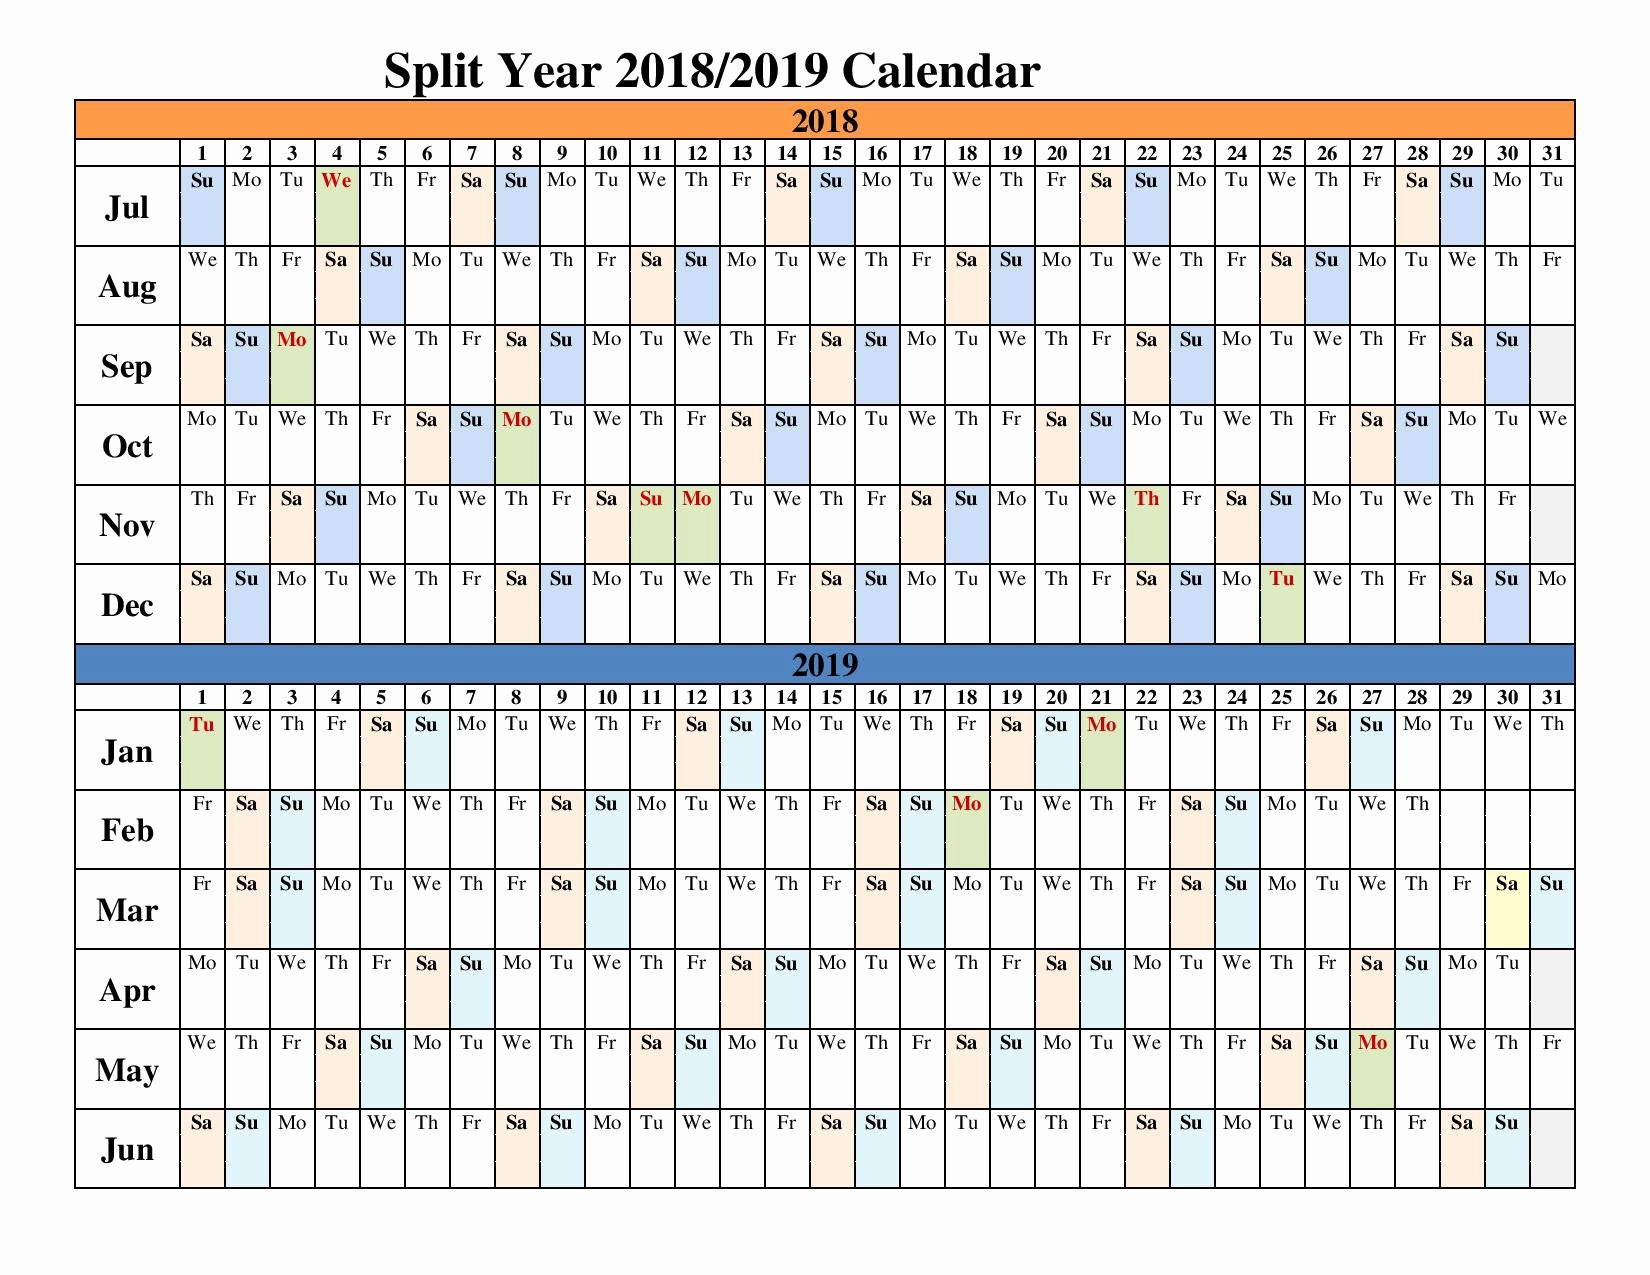 2018 and 2019 Printable Calendar Best Of 2018 2019 Split Year Calendars Blank Templates